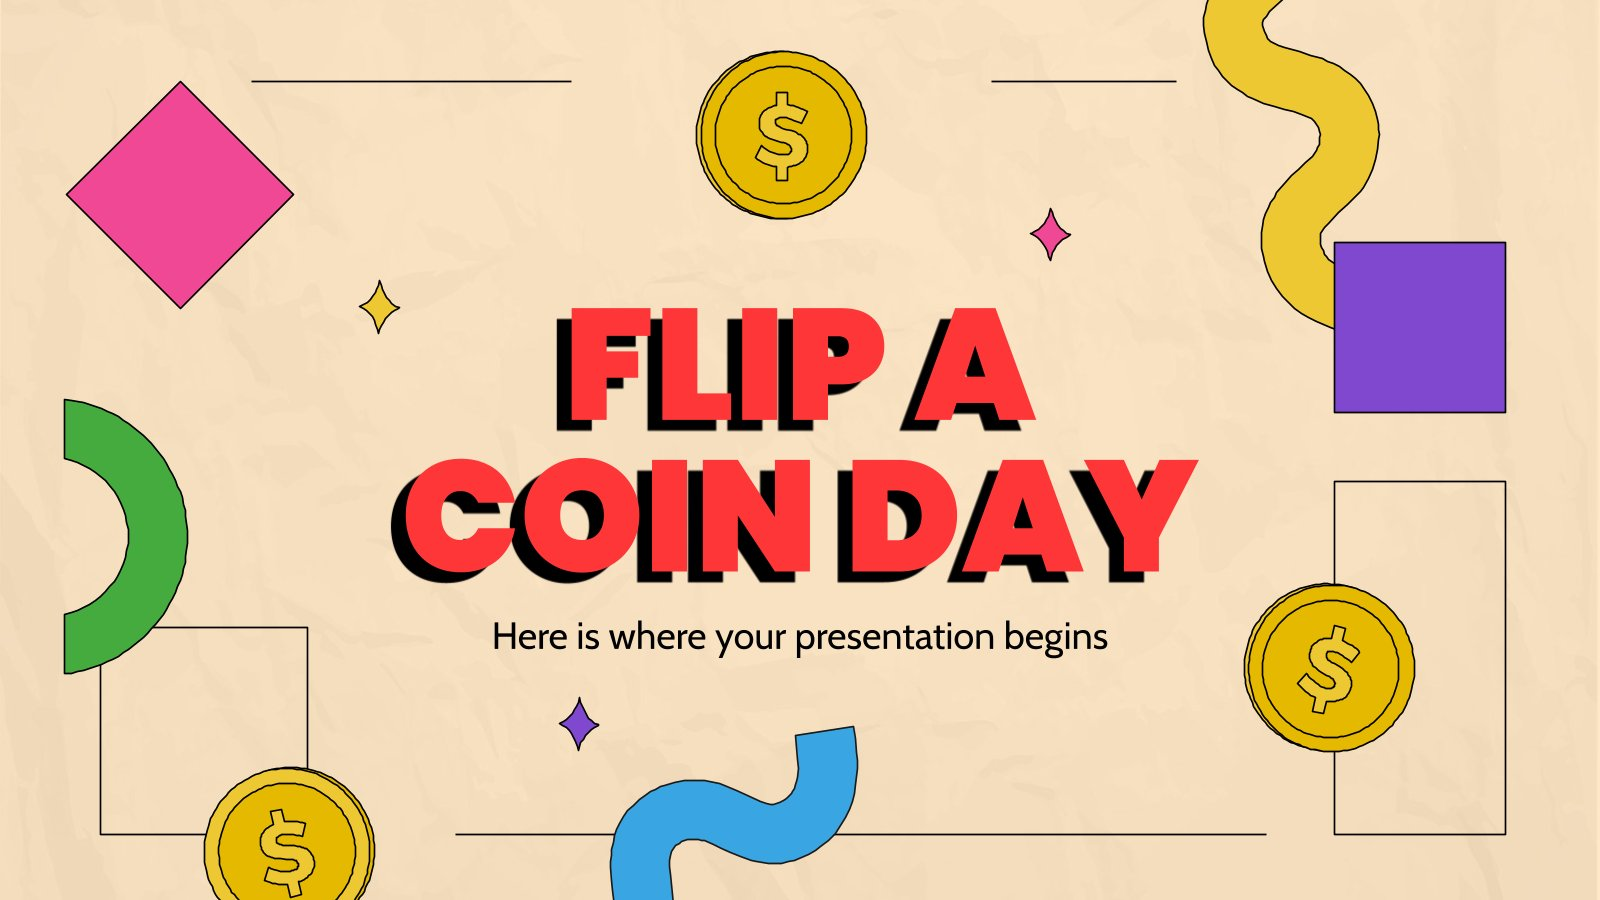 Flip a Coin Day presentation template